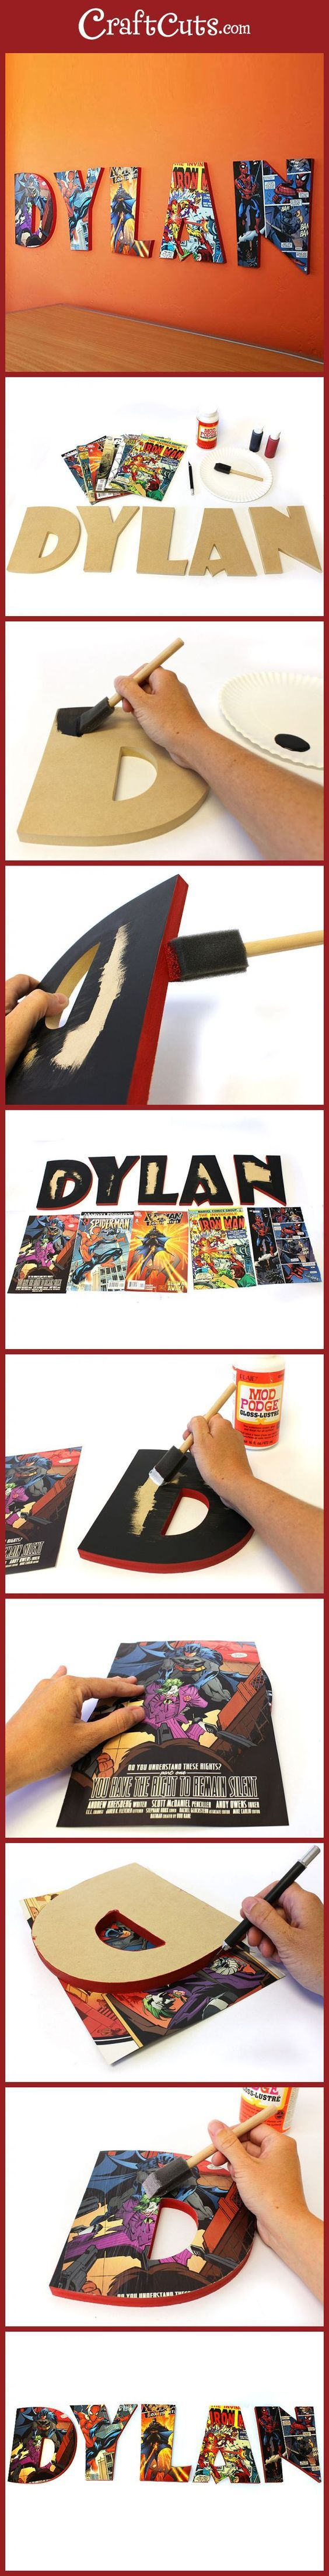 How to Make Comic Book Letters | Wood Comic Book Letters | http://CraftCuts.com